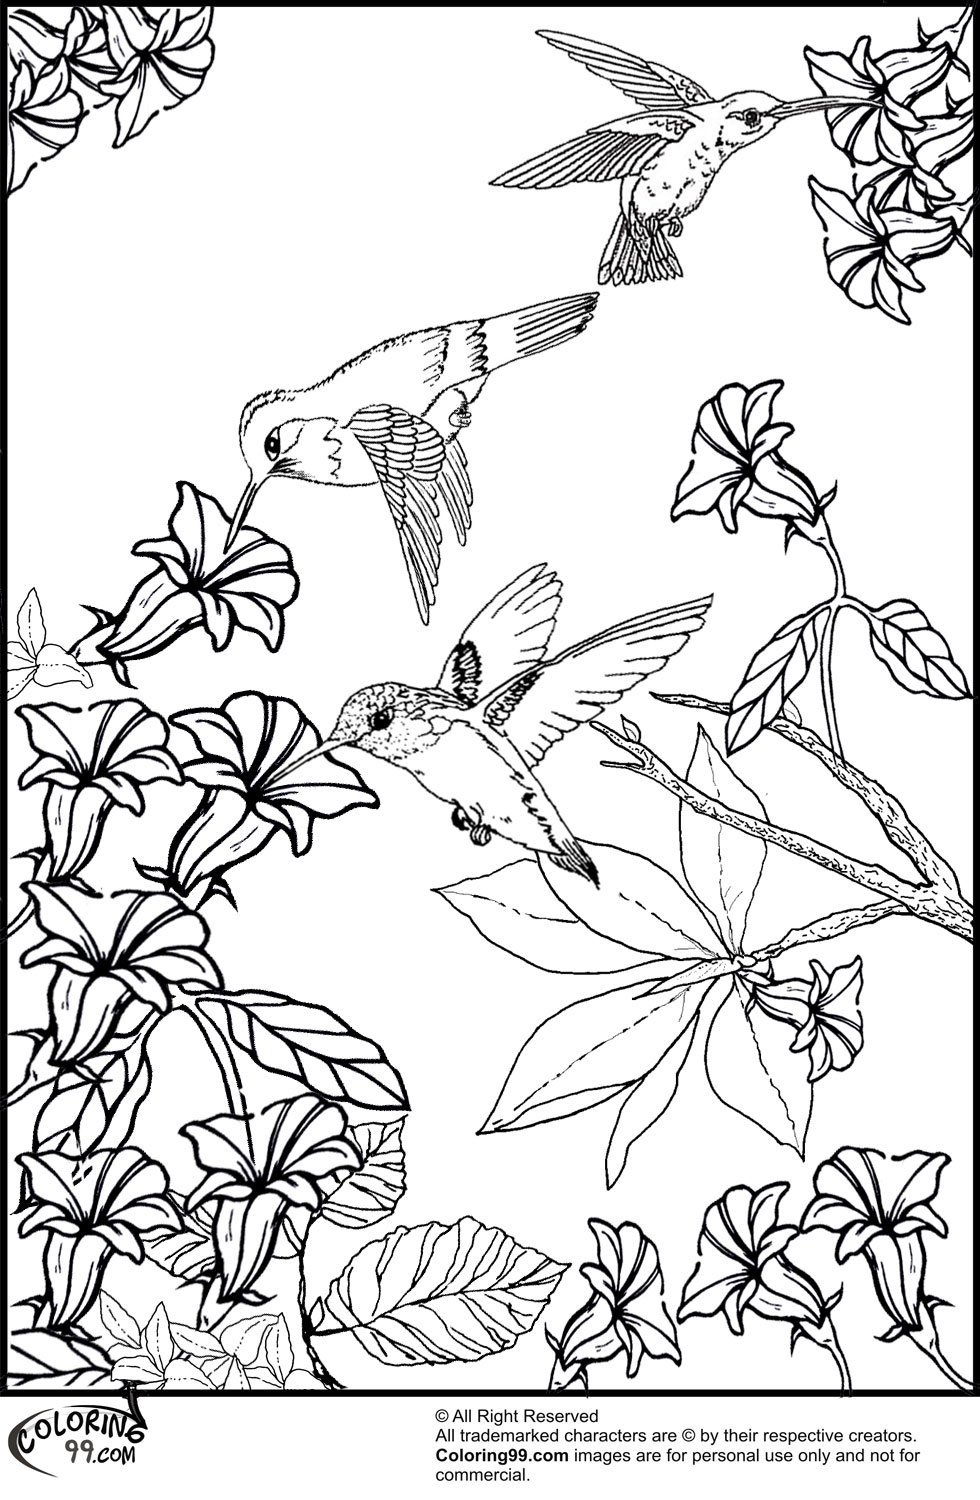 Hummingbird Coloring Pages | Team colors